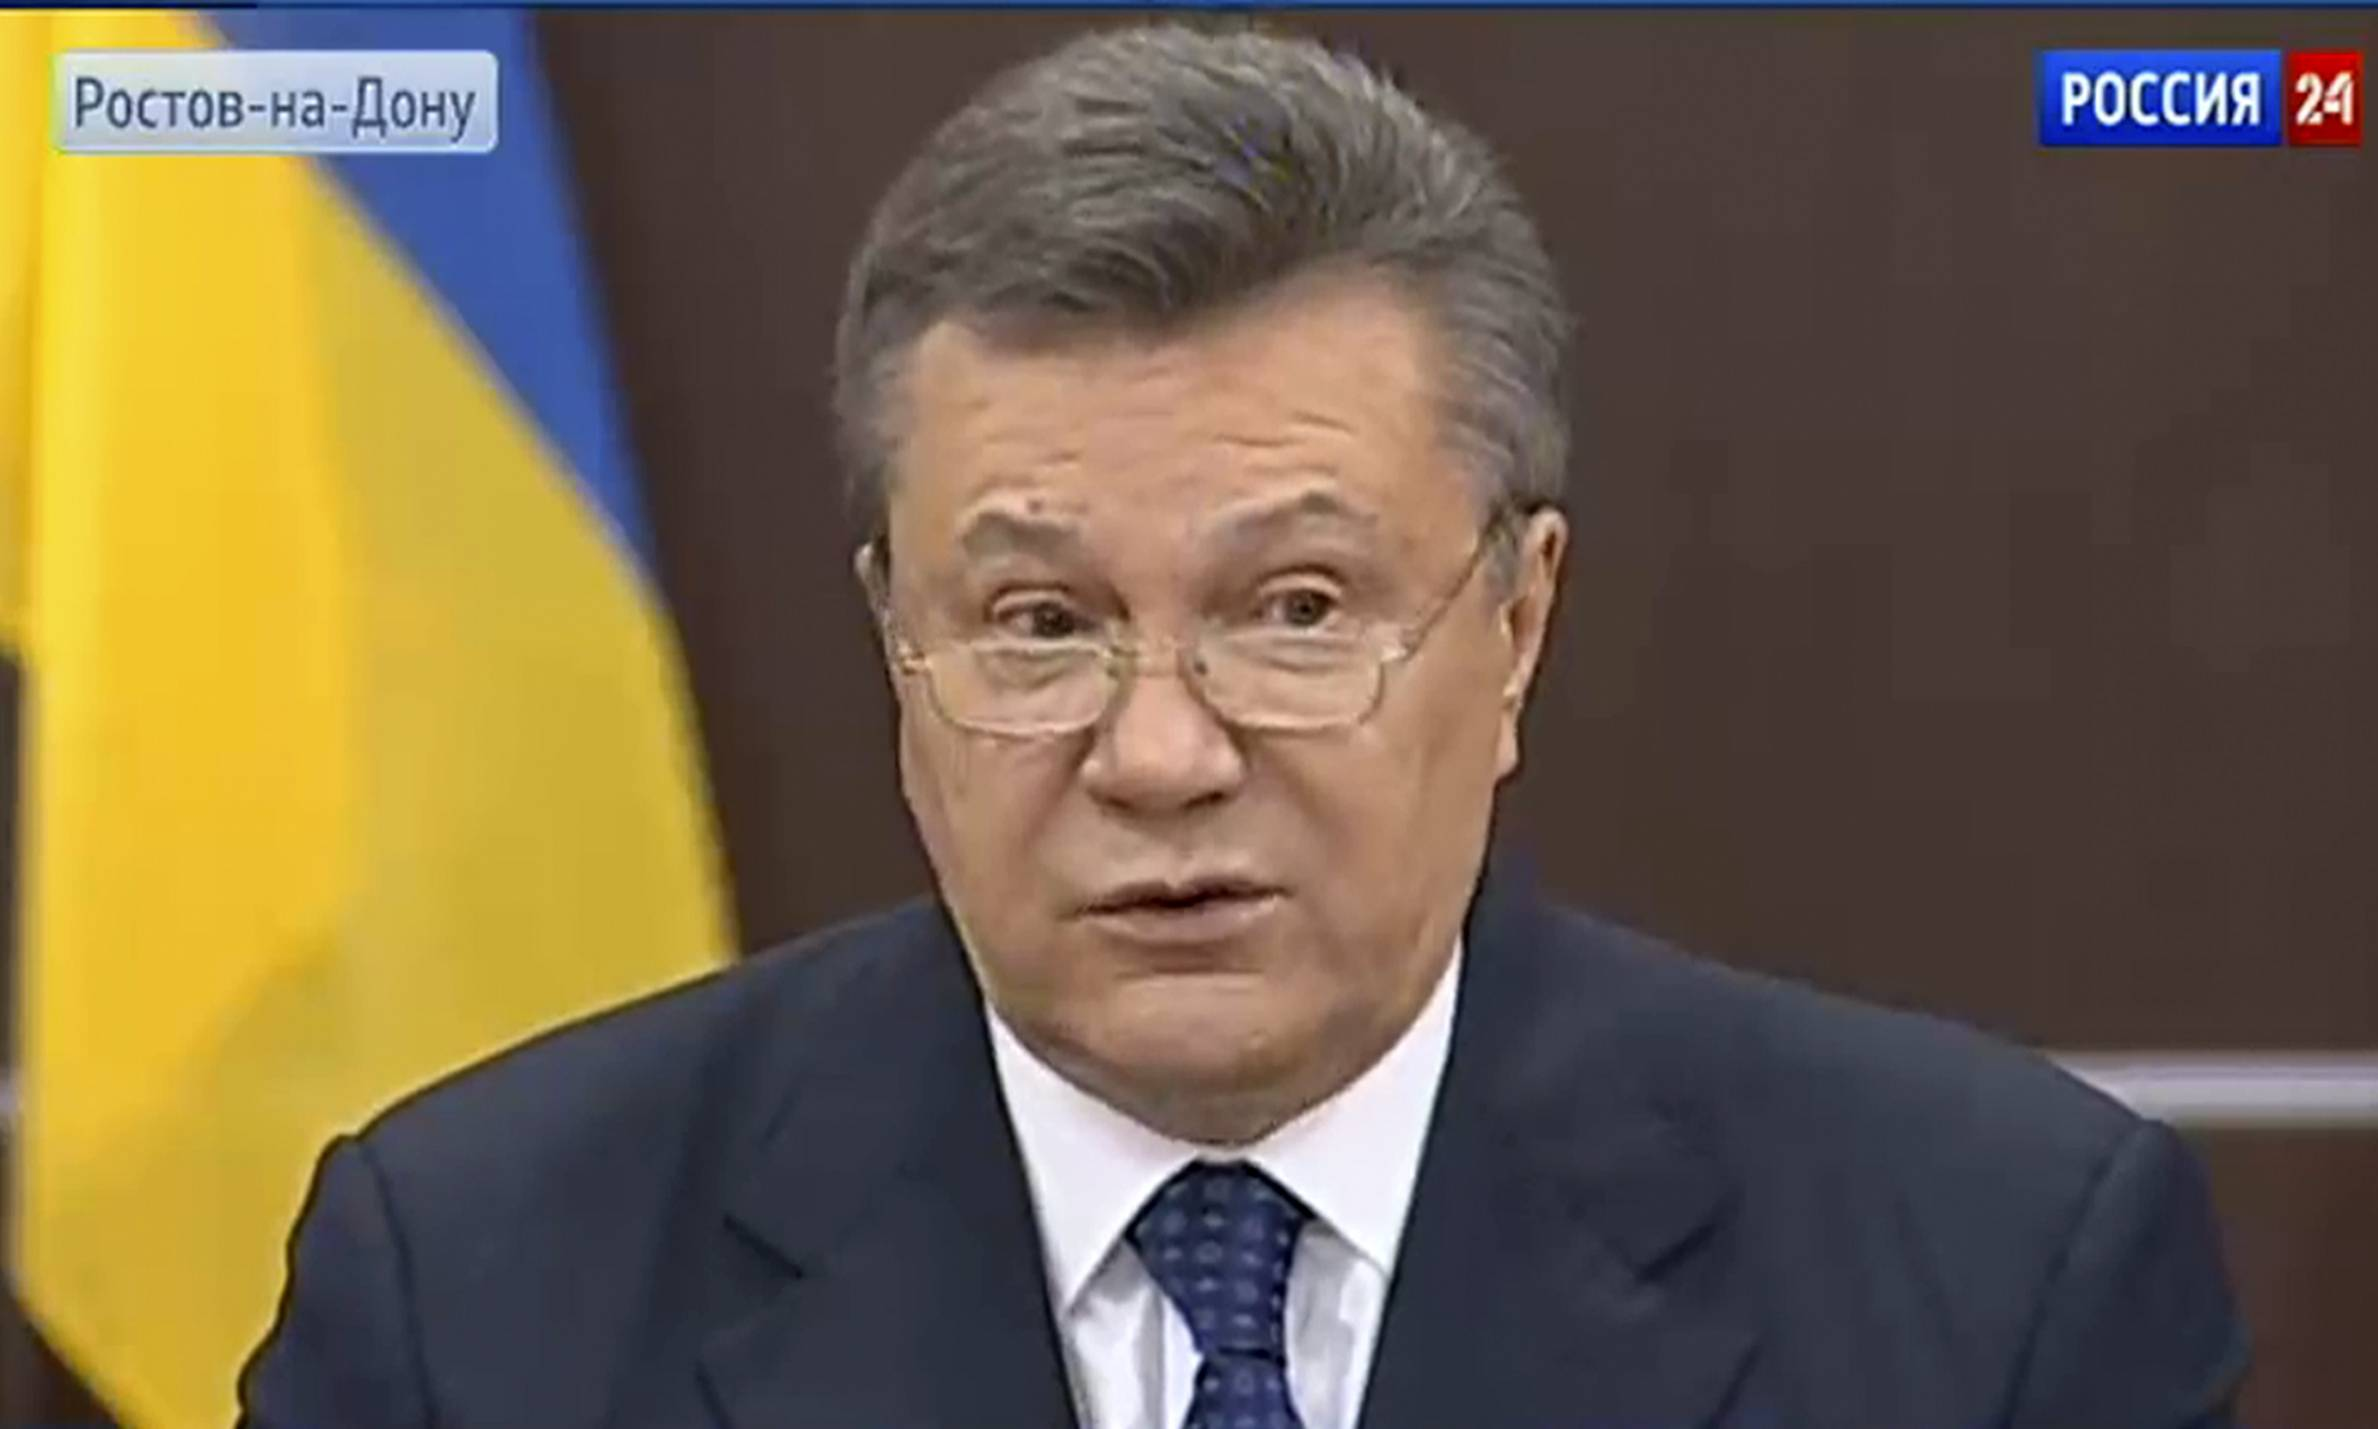 Ukraine's fugitive president, Viktor Yanukovych, speaking on Russian state television Sunday, accused the American CIA of being behind the new Ukrainian government's decision to deploy armed forces to quash an increasingly brazen pro-Russian insurgency.